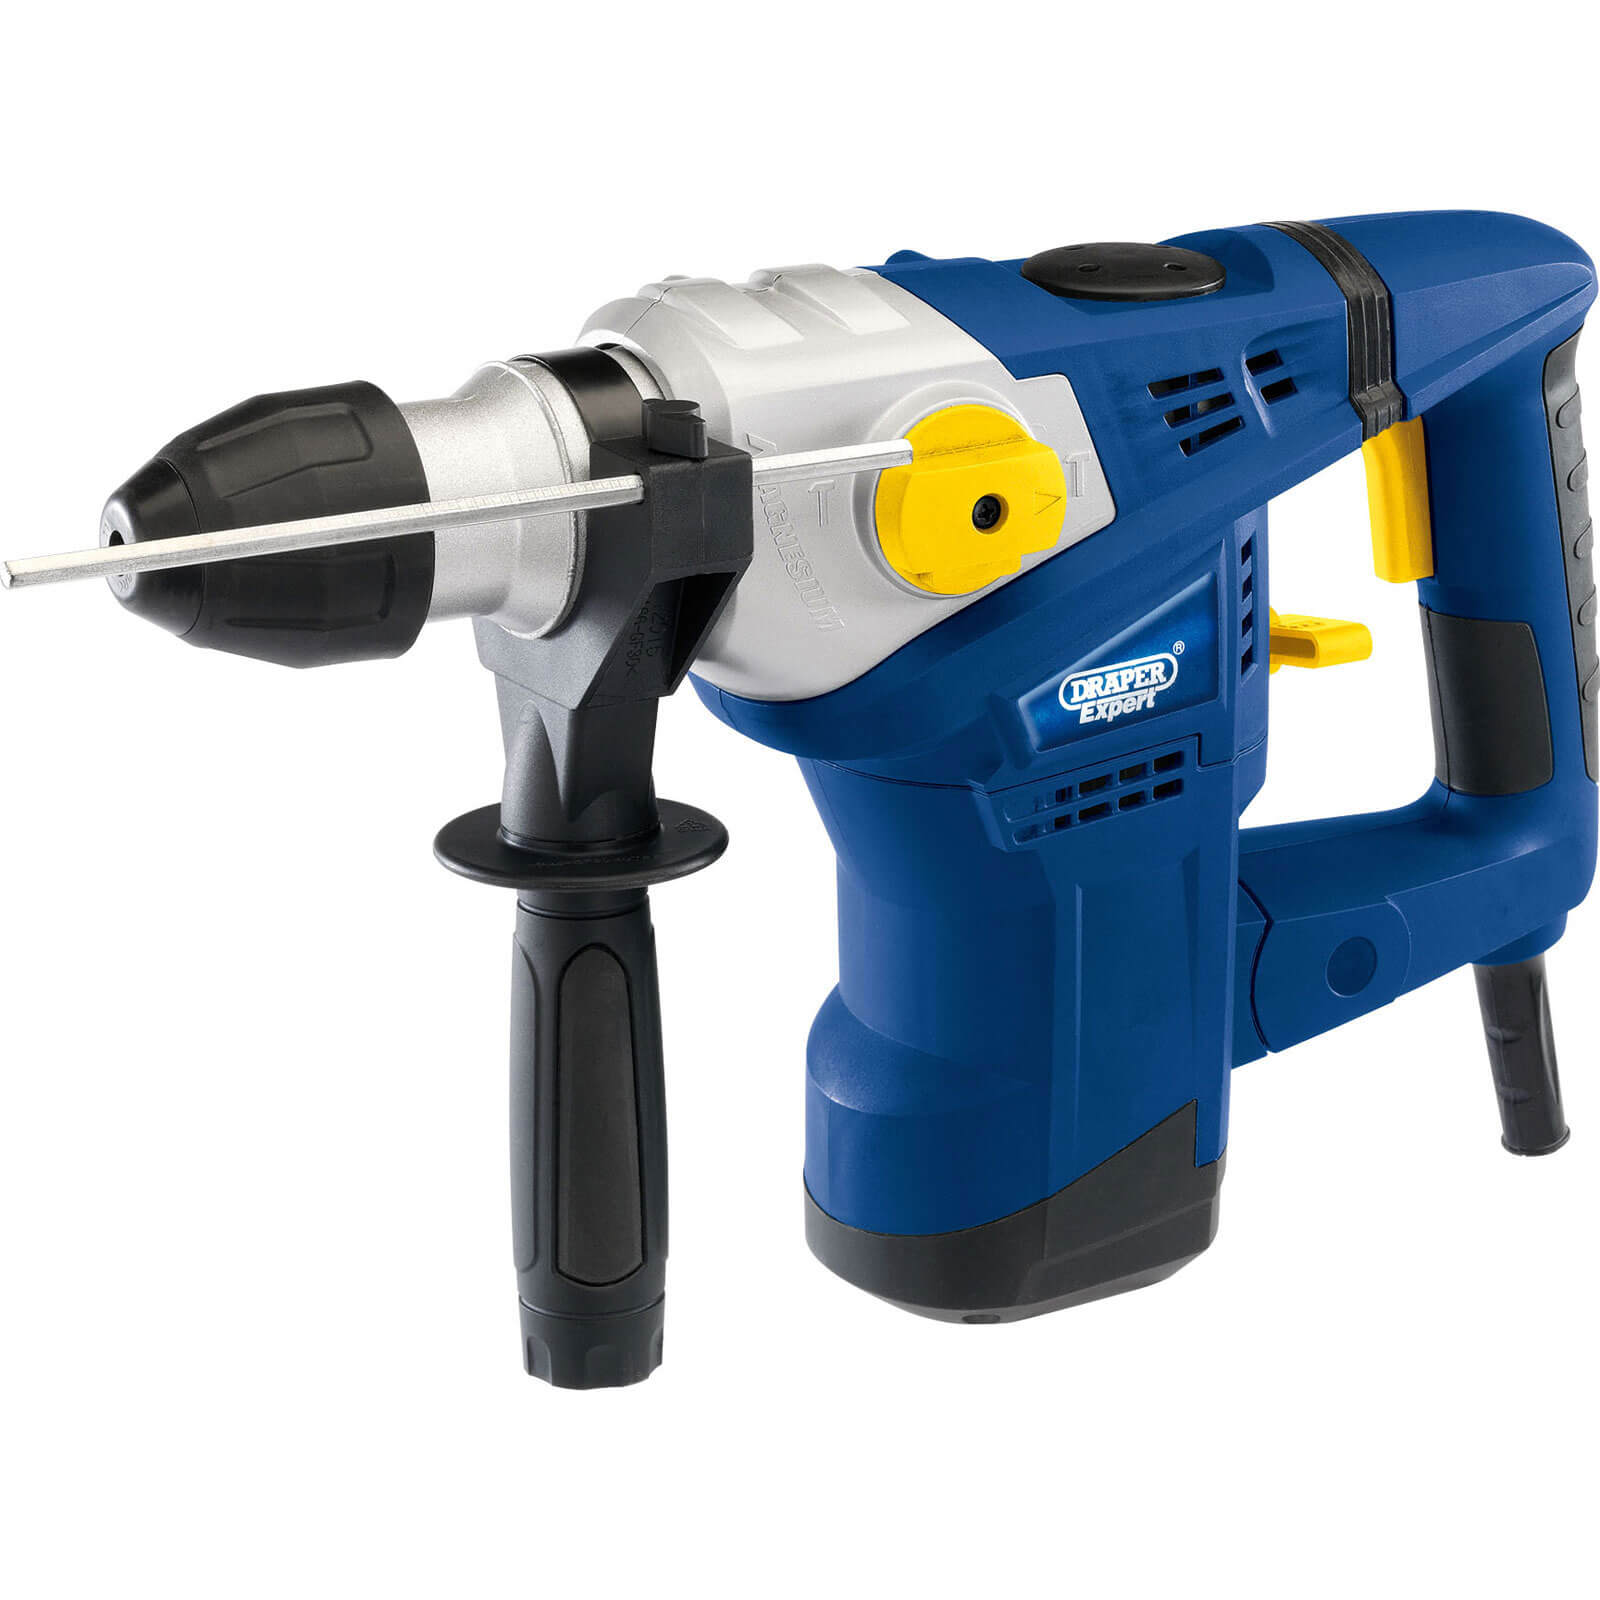 Find Every Shop In The World Selling 5kg Sds Max At Dewalt Demolition Hex Chipping Hammer 1500w 800rmin 298635 21006724